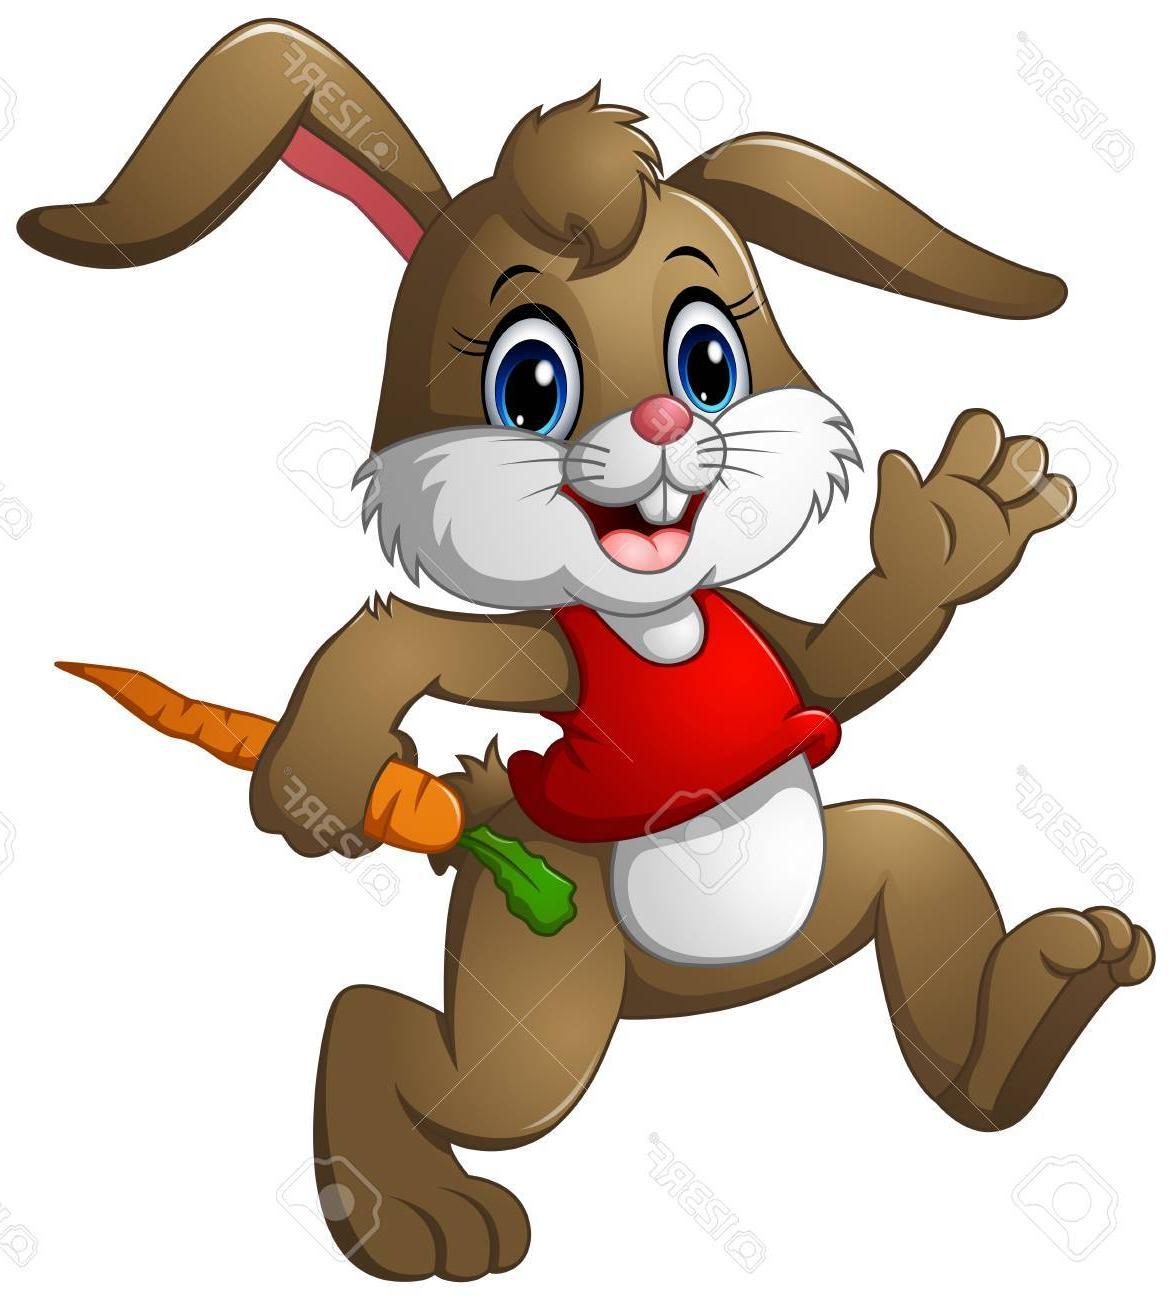 Funny buy one get one free clipart picture freeuse library Best Funny Easter Clip Art Cdr » Free Vector Art, Images, Graphics ... picture freeuse library